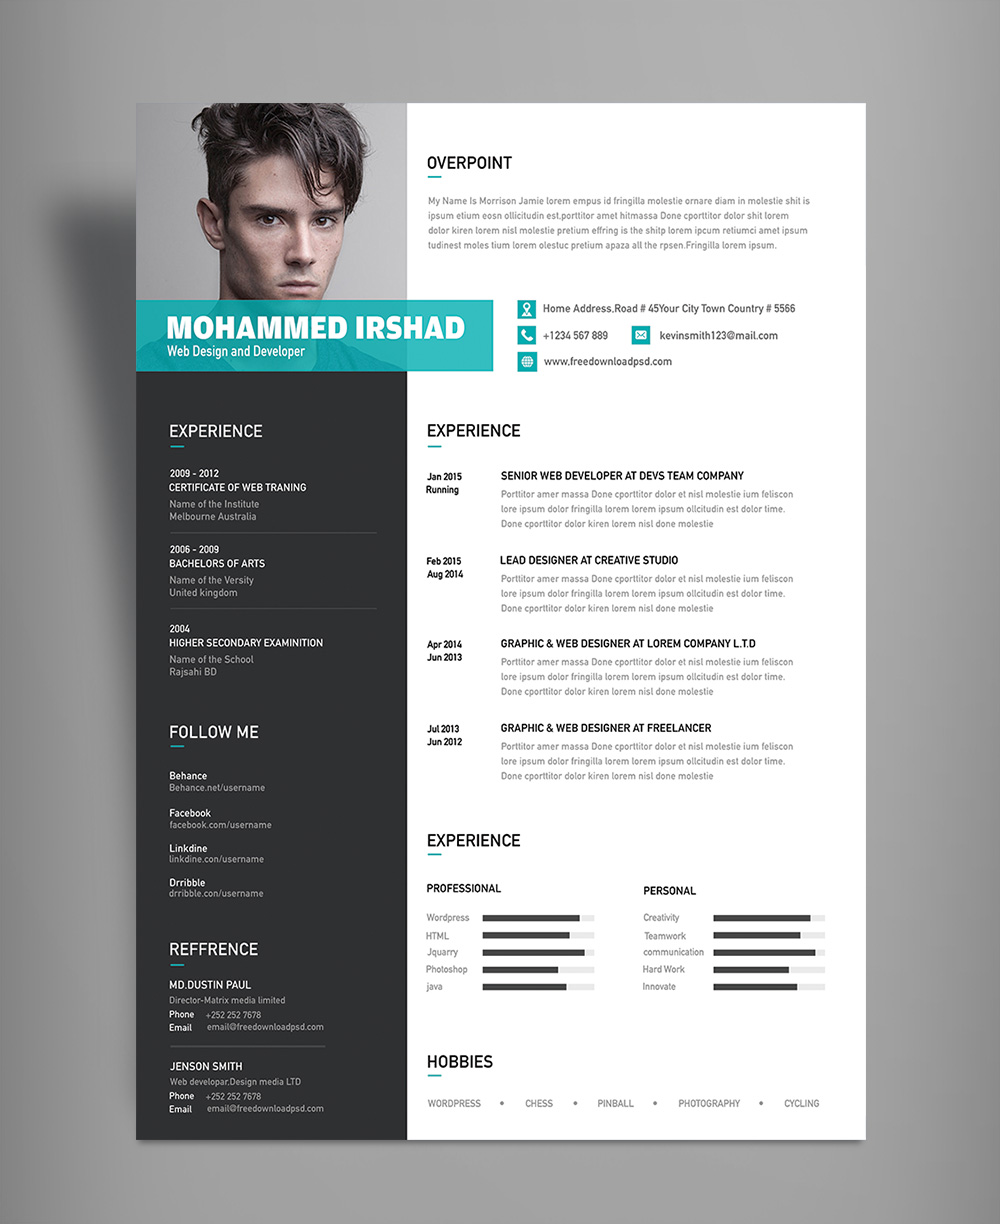 free modern resume cv design template psd file good resume. Black Bedroom Furniture Sets. Home Design Ideas